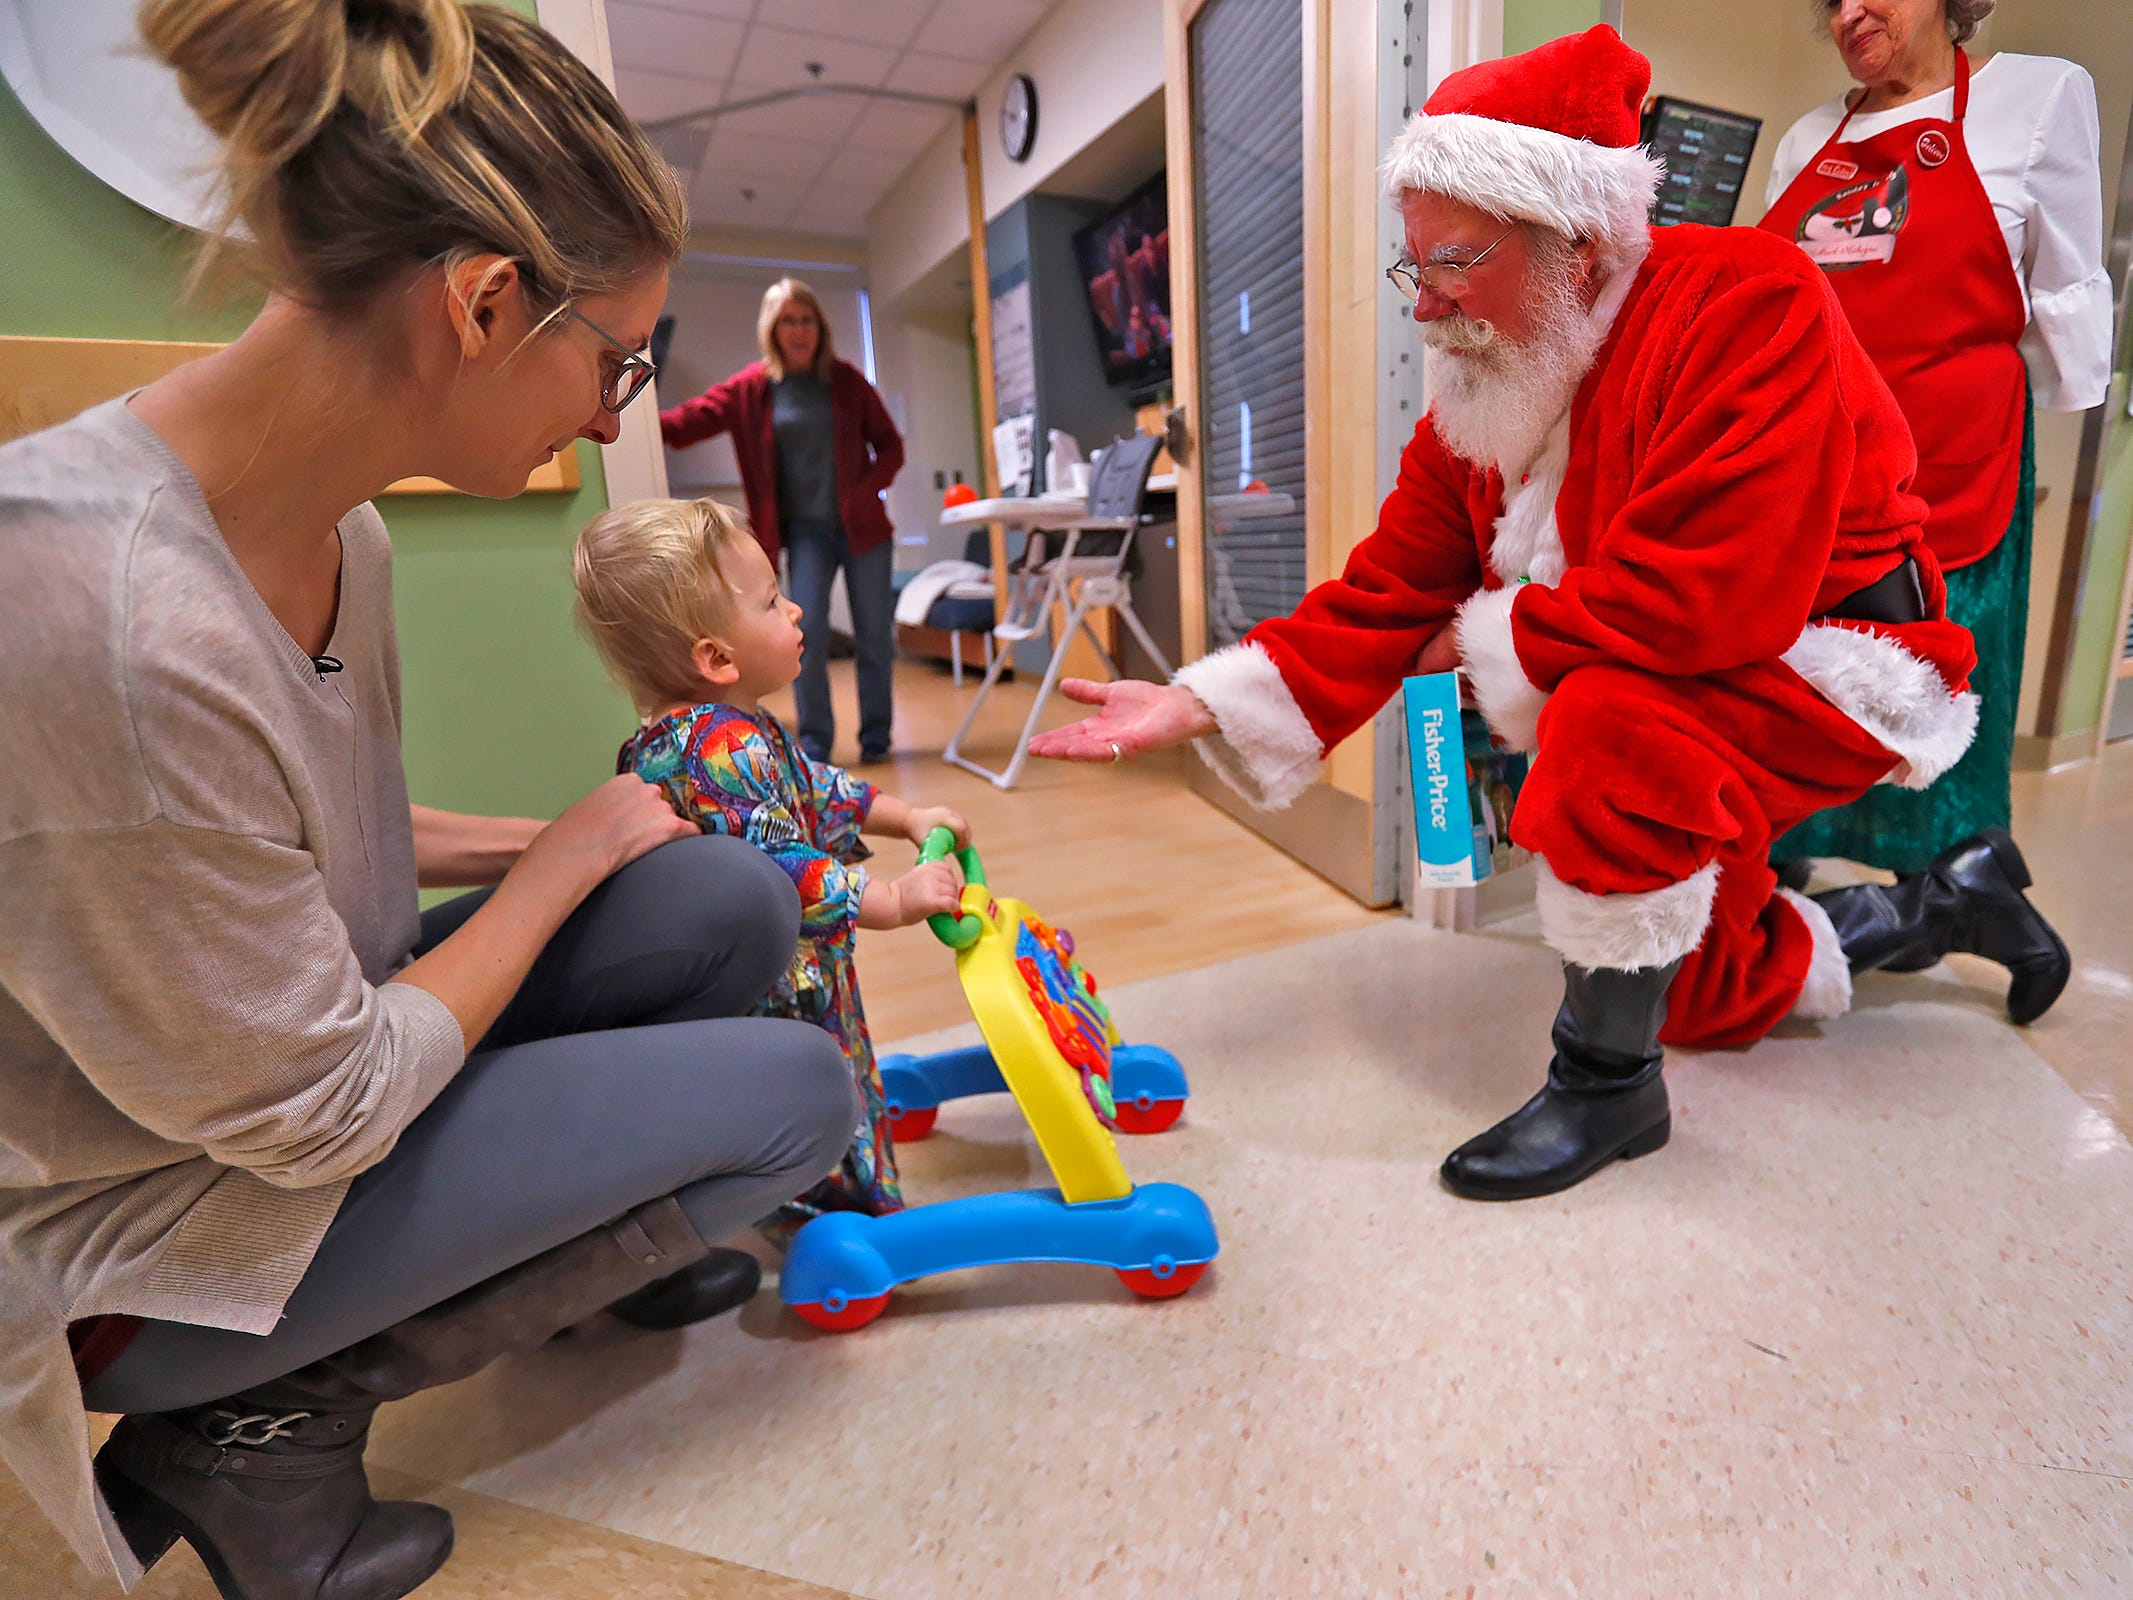 Finnick McCandless, center, sits with his mother, Celena McCandless, left, as they visit with Santa and Mrs. Claus, also know as Bill and Kathy Armstrong, during Santa's visit with kids at Riley Children's Health, Thursday, Dec. 13, 2018.